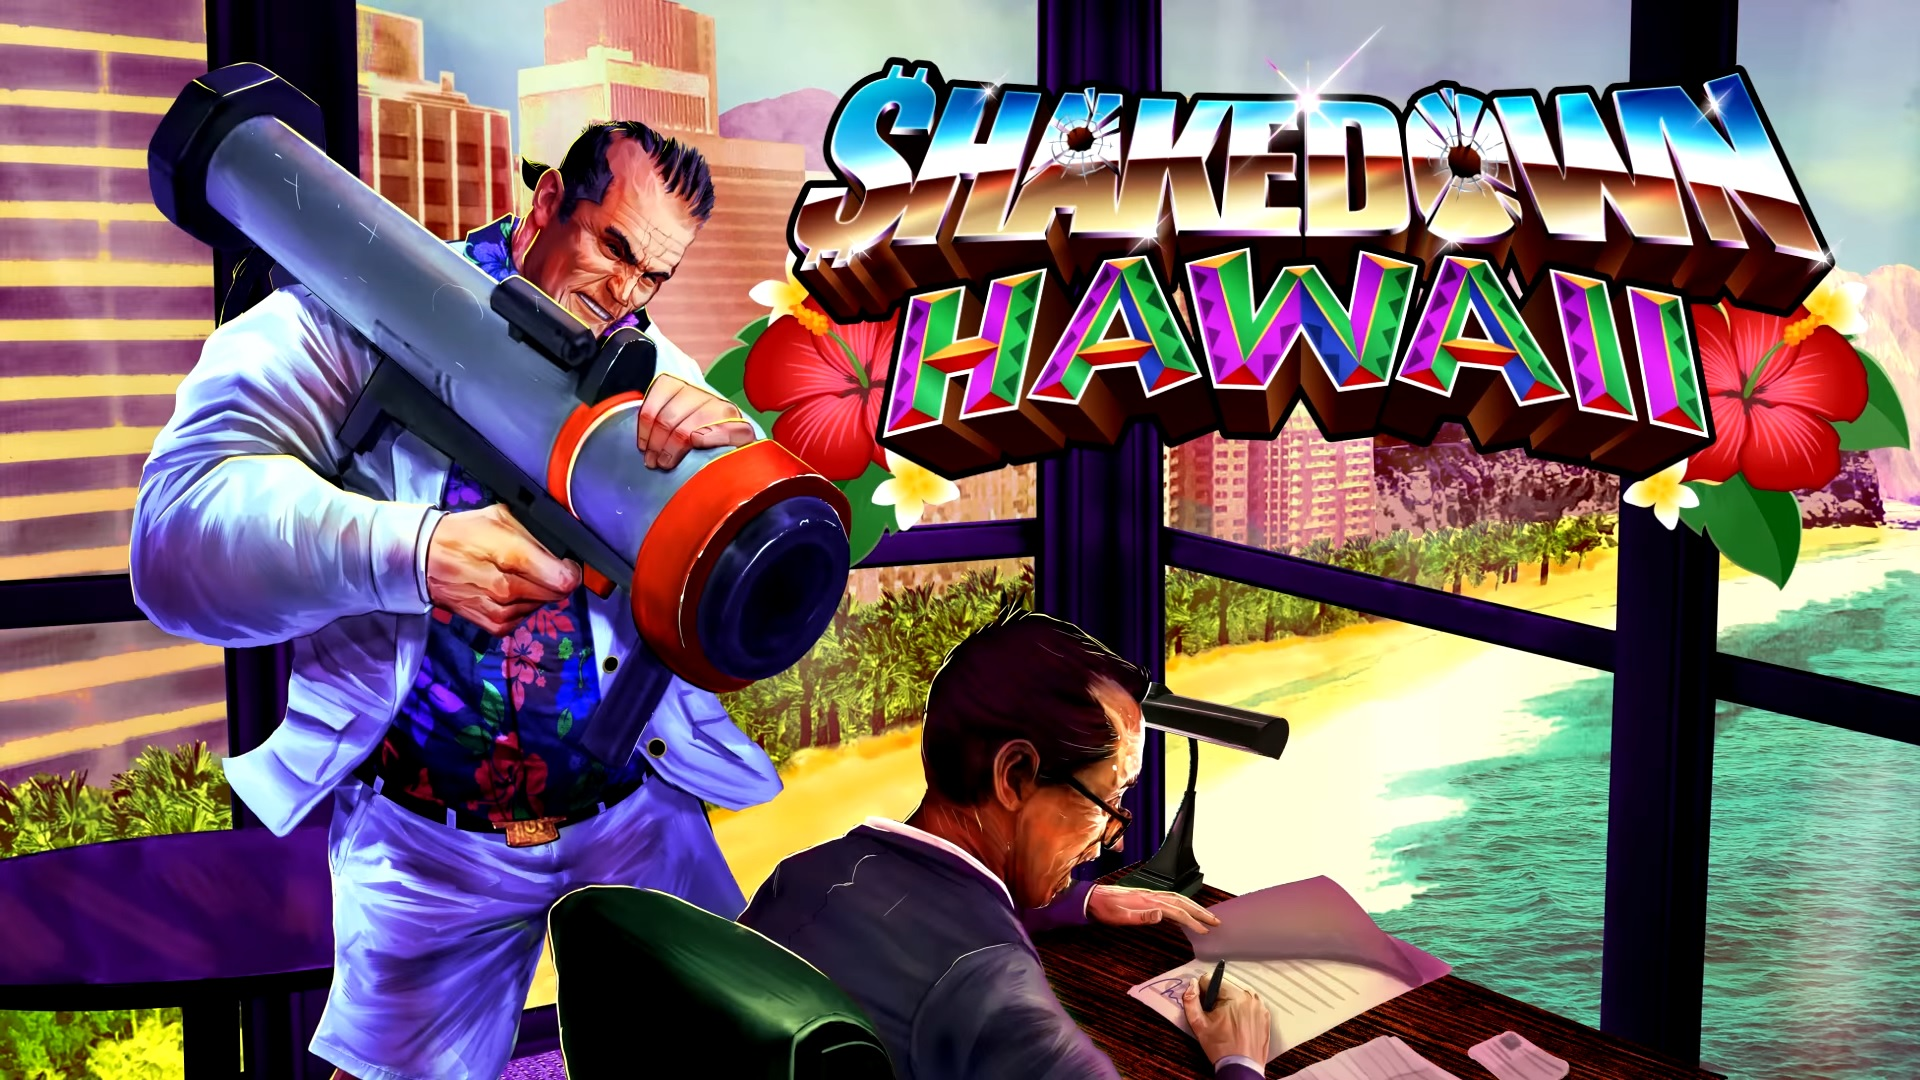 Retro City Rampage sequel, Shakedown: Hawaii, arrives this year - VG247